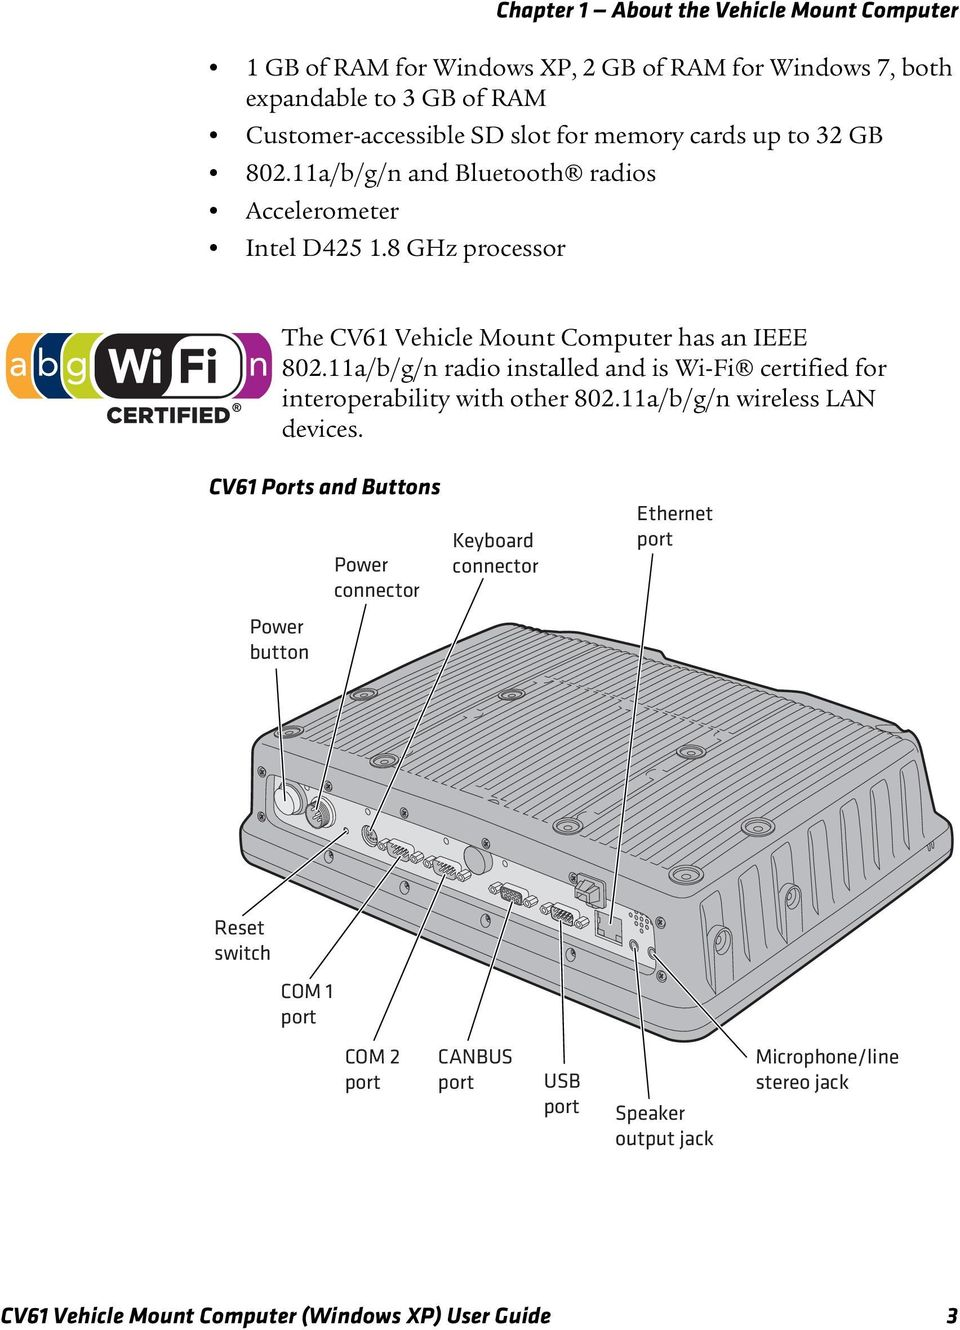 11a/b/g/n radio installed and is Wi-Fi certified for interoperability with other 802.11a/b/g/n wireless LAN devices.